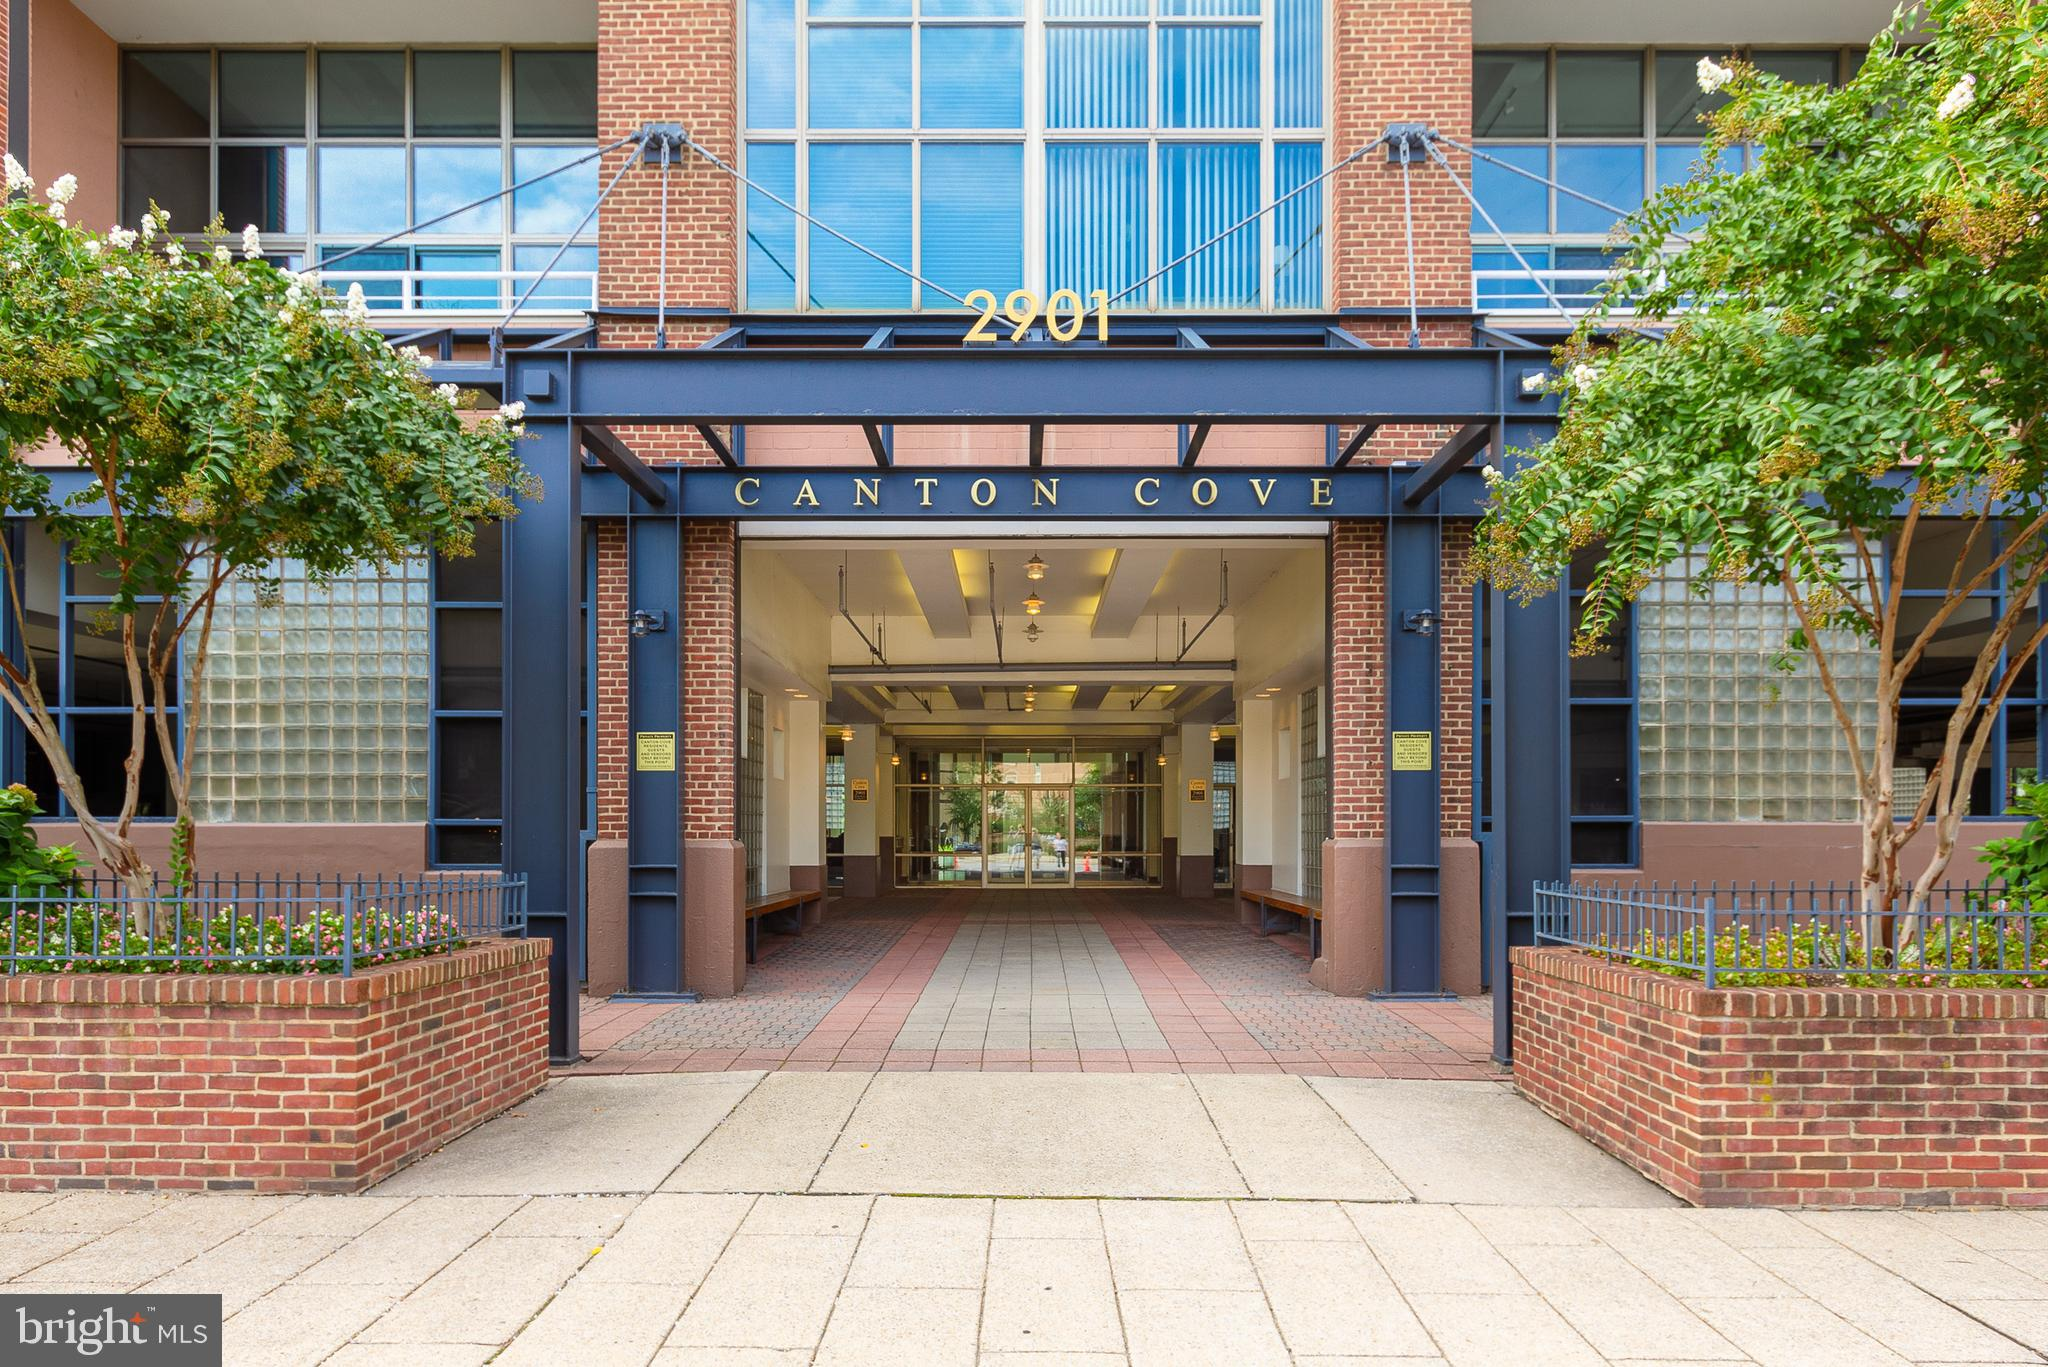 WELCOME HOME TO THIS 2-LEVEL LOFT LOCATED IN CANTON COVE CONDOMINIUM THAT SITS ON THE BEAUTIFUL BALTIMORE WATERFRONT.  THIS 2-BEDROOM 2-FULL BATH CONDO OFFERS CEILING-TO-FLOOR WINDOWS AND BALCONY.   LOFT IS A SPACIOUS MASTER SUITE WITH WALK-IN CLOSET, UPDATED FULL BATH, AND BONUS ROOM THAT CAN BE USED AS A DEN, OFFICE, OR READING/ZEN ROOM. FULL-SIZE LAUNDRY ON MAIN LEVEL. 2ND BEDROOM ON MAIN LEVEL OFFERS CLOSET BUILT-INS AND UPDATED BATH .  THIS OPEN FLOOR PLAN IS SPACIOUS WITH PLENTY OF STORAGE.  KITCHEN HAS A PANTRY CABINET, WET BAR, SEPARATE PANTRY CLOSET, AND LOTS OF DRAWER SPACE.  ENJOY THE SUNSETS FROM THE ROOFTOP DECK  STEPS TO THE WATERFRONT.  24-HOUR FRONT DESK AND ASSIGNED PARKING SPACE. GAS, WATER, AND CABLE INCLUDED.  LOCATED NEXT TO THE CANTON WATERFRONT PARK. CLOSE TO DOWNTOWN, FELLS POINT, HARBOR EAST, AND STEPS FROM CANTON CROSSING AND ALL ATTRACTIONS. CLOSE TO 95, 895, 695 & 83.  LIVE LIKE YOU ARE ON VACATION.